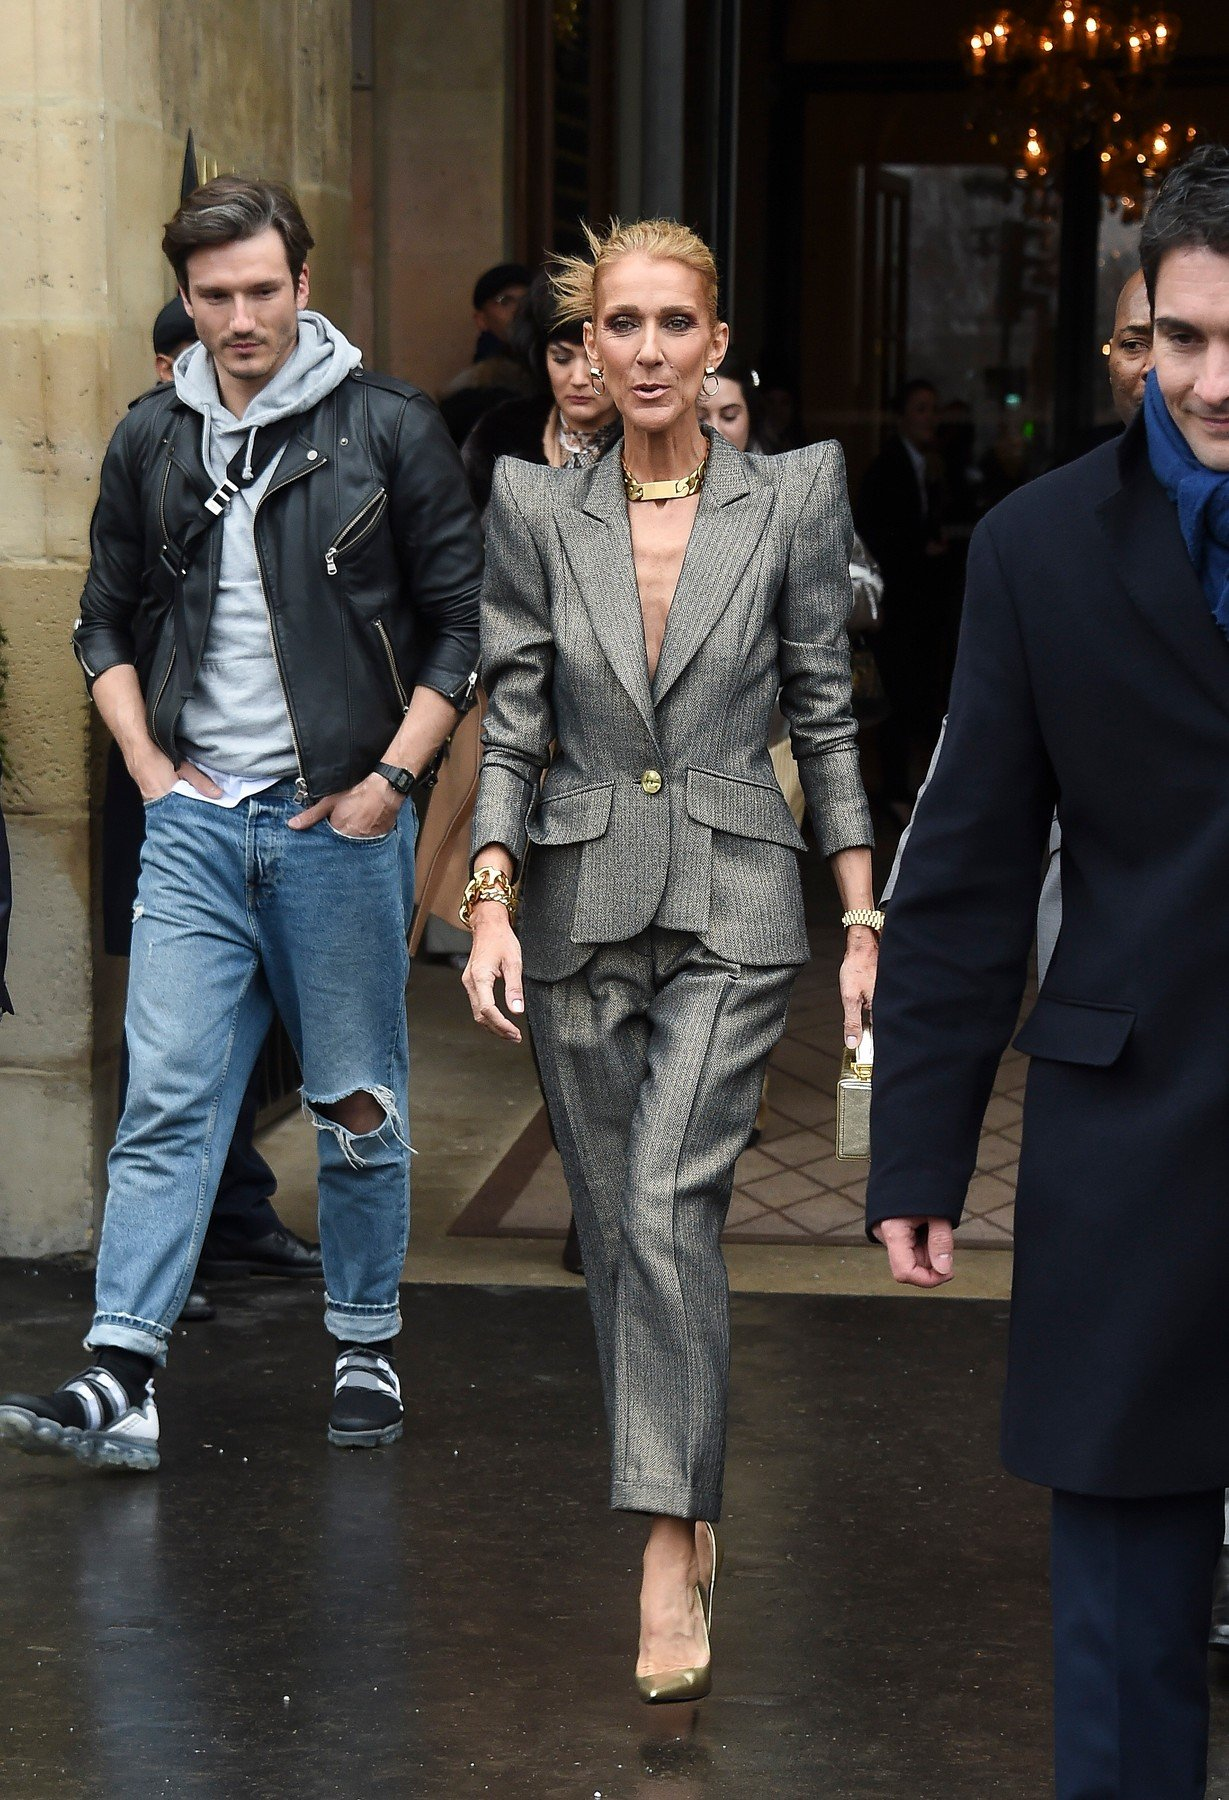 Celine Dion and Pepe Munoz sighting during the Haute Couture 's Spring-Summer 2019 fashion-week in Paris. 23 Jan 2019, Image: 409714211, License: Rights-managed, Restrictions: ONLY Australia, Canada, Croatia, Denmark, Greece, Ireland, Israel, Japan, Lithuania, New Zealand, Norway, Poland, Portugal, Romania, Slovakia, Slovenia, South Africa, South Korea, Taiwan, Thailand, Turkey, Ukraine, United Arab Emirates, United Kingdom, United States, Model Release: no, Credit line: Profimedia, Mega Agency